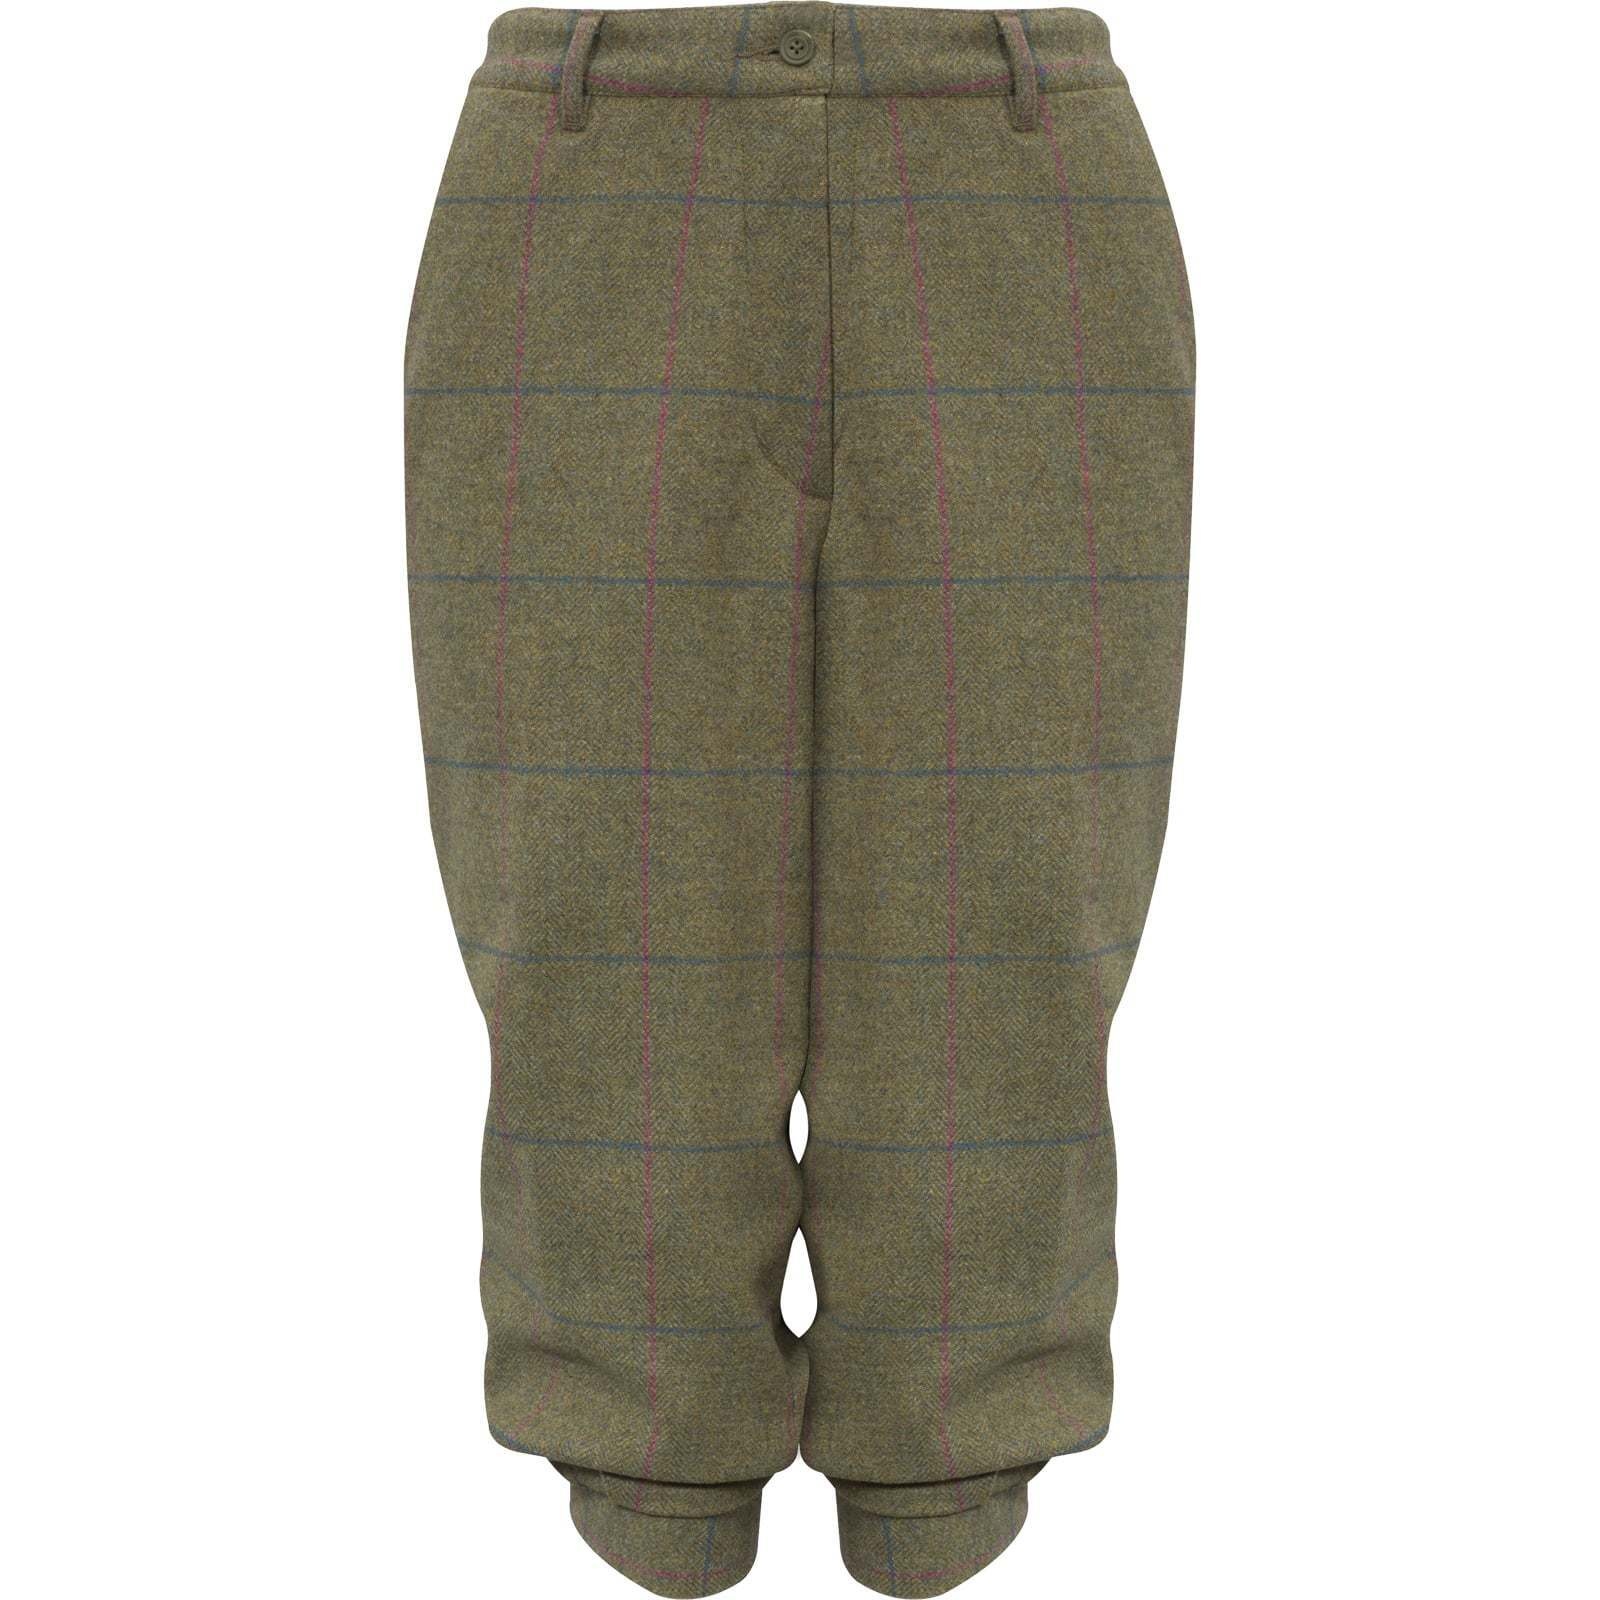 Alan Paine Combrook Ladies Breeks - Juniper - Reduced from  to